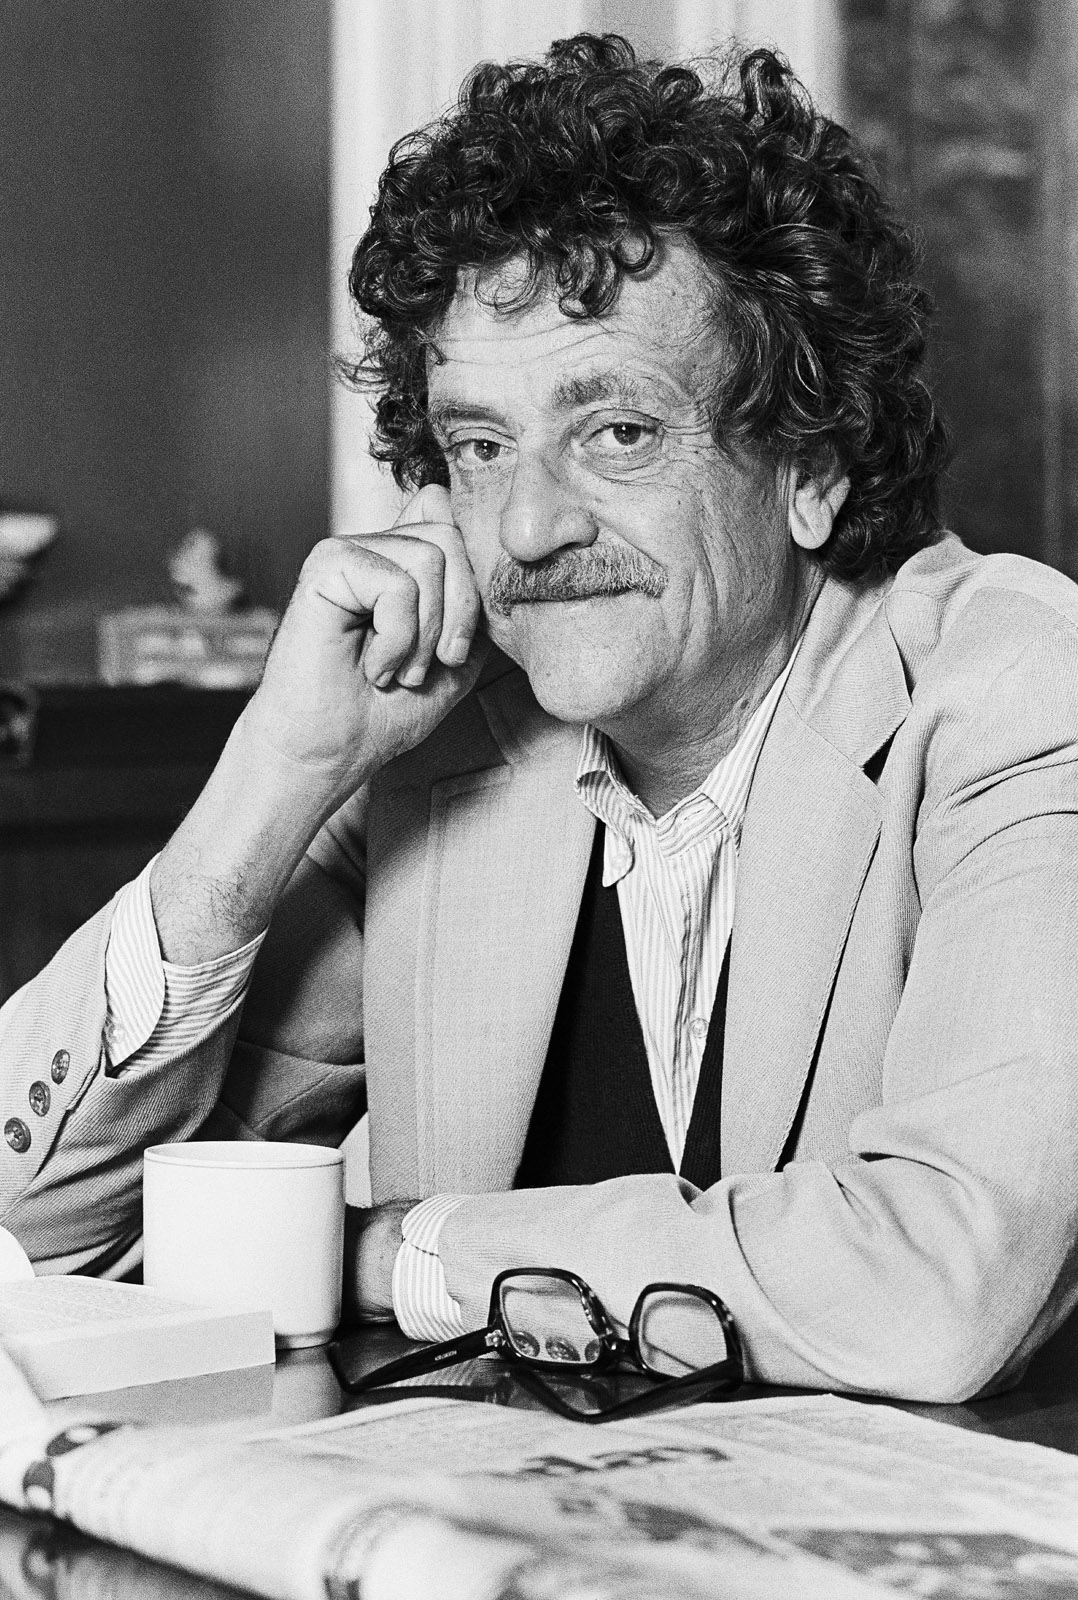 Kurt Vonnegut, Jr. in New York City, 1979. Photo by Marty Reichenthal. Courtesy of slopemedia.org.